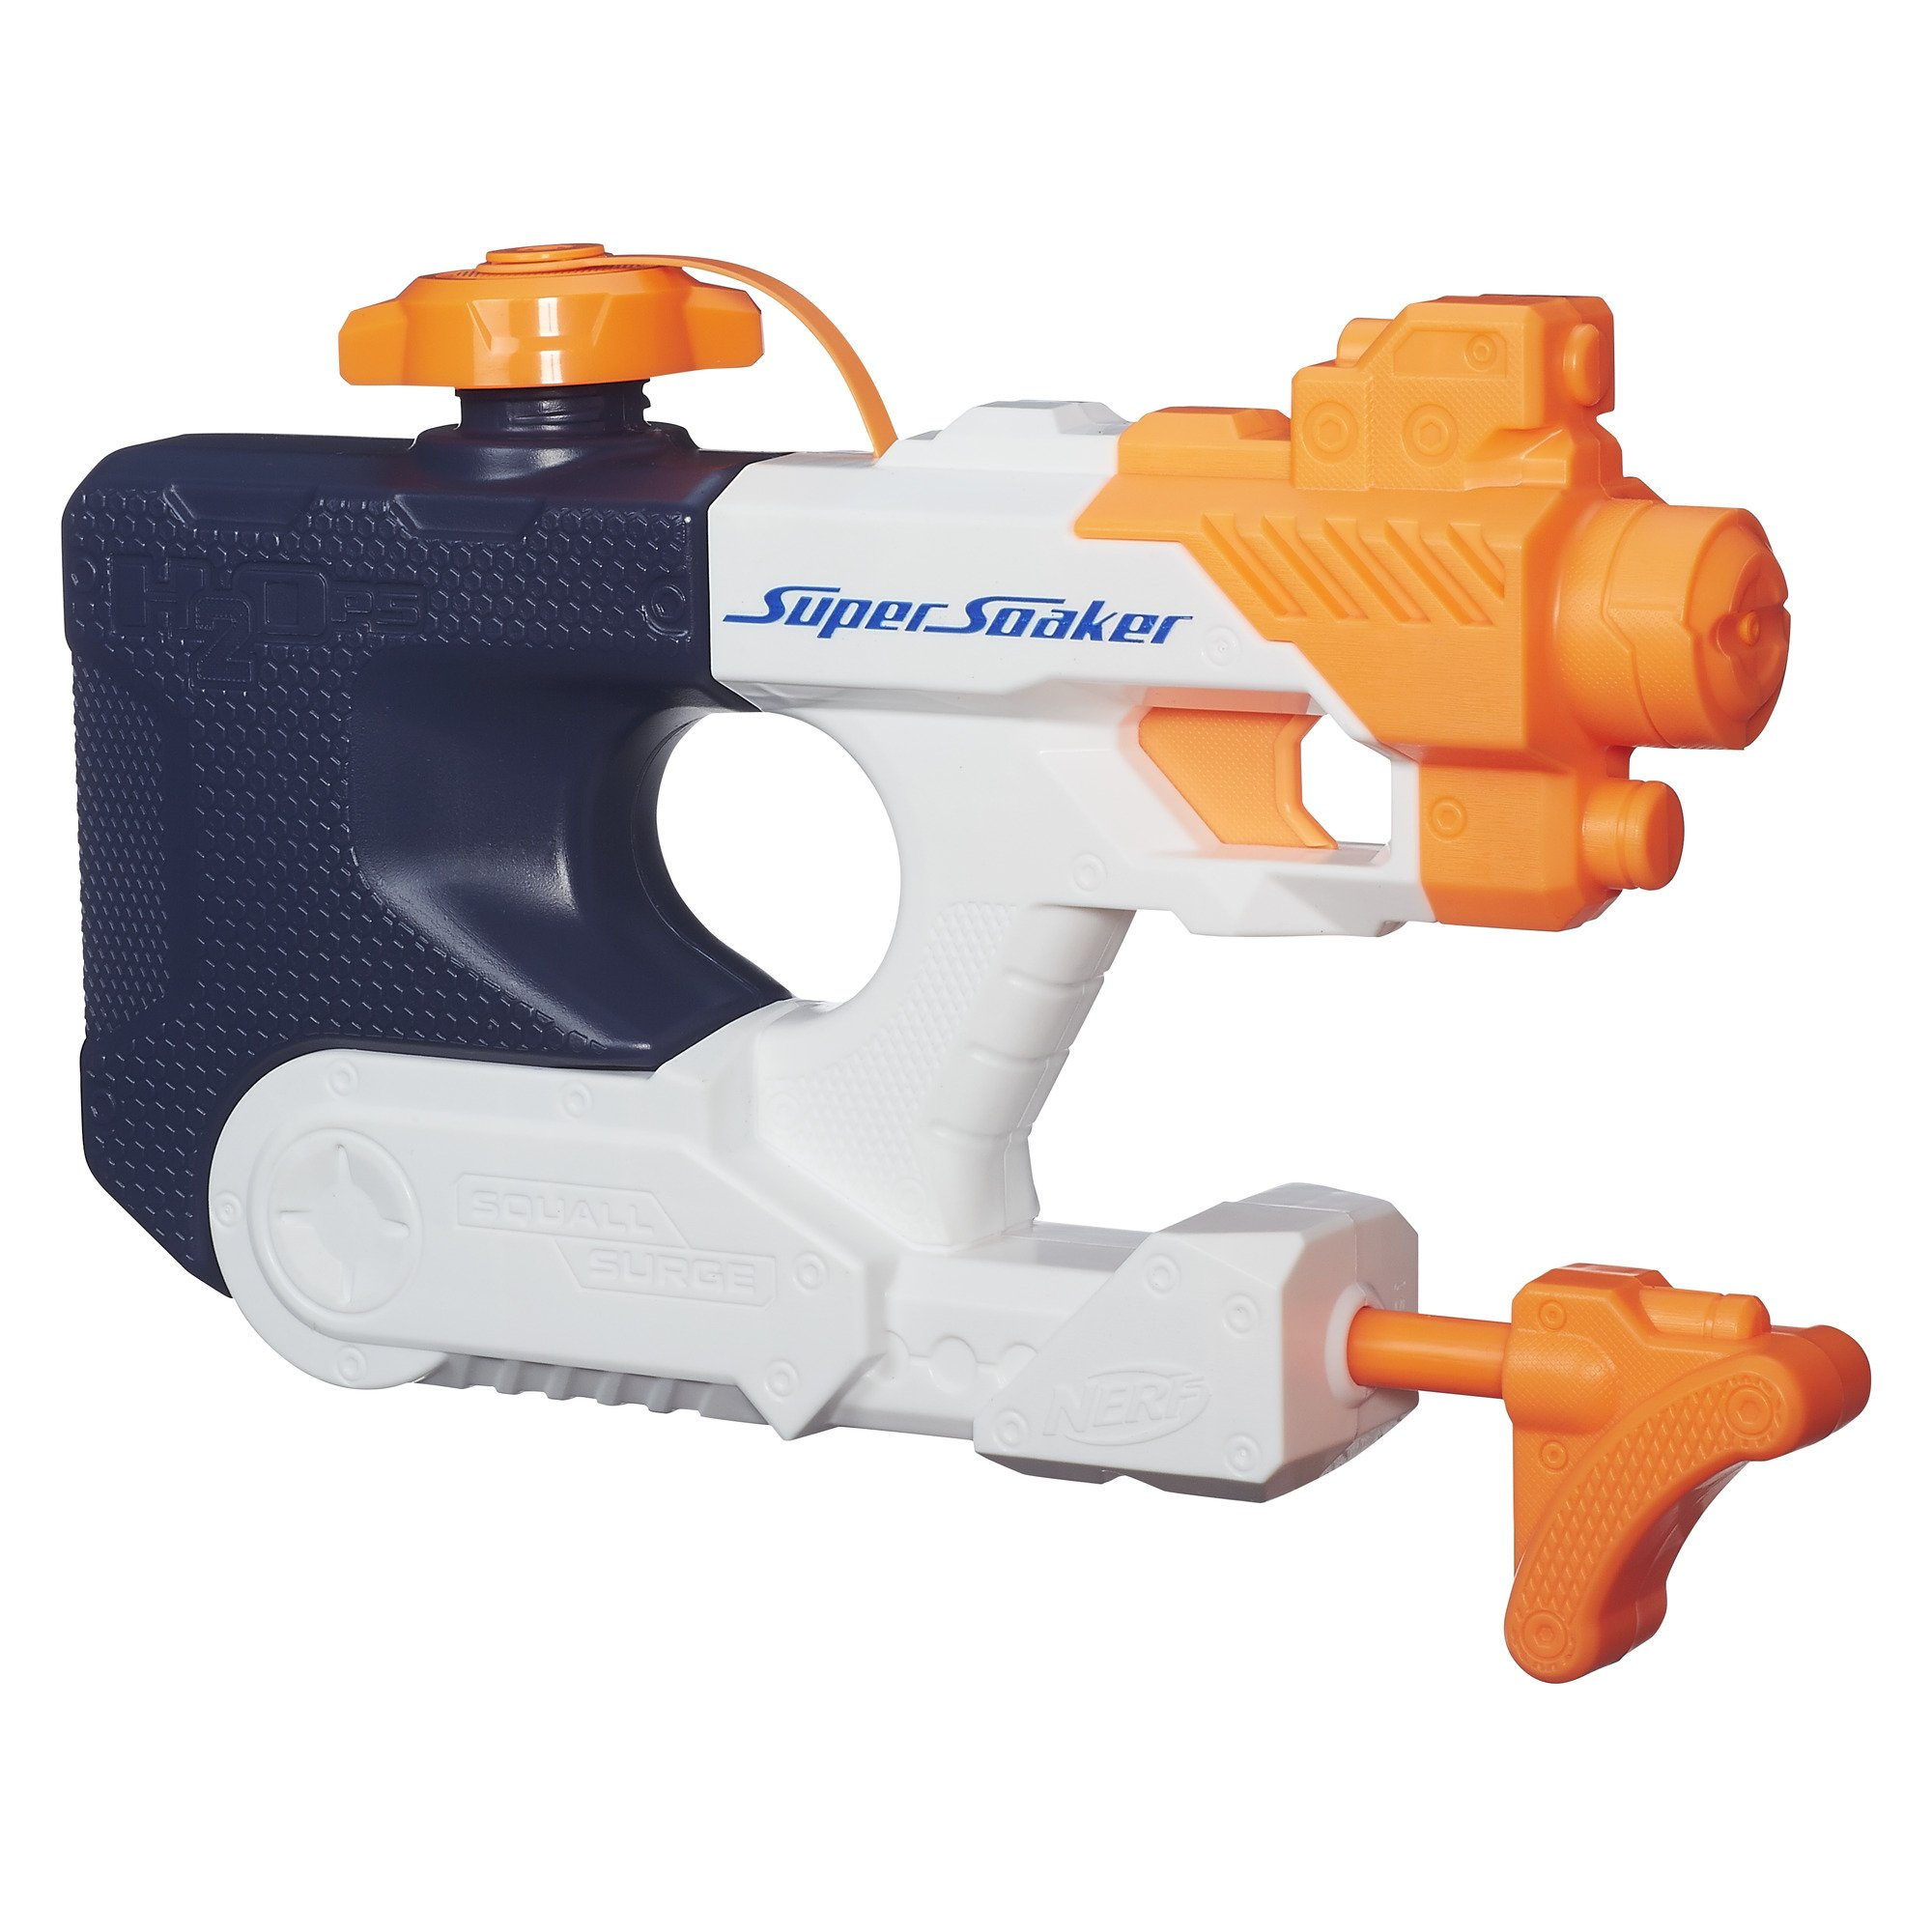 Nerf Super Soaker Squall Surge by SUPERSOAKER